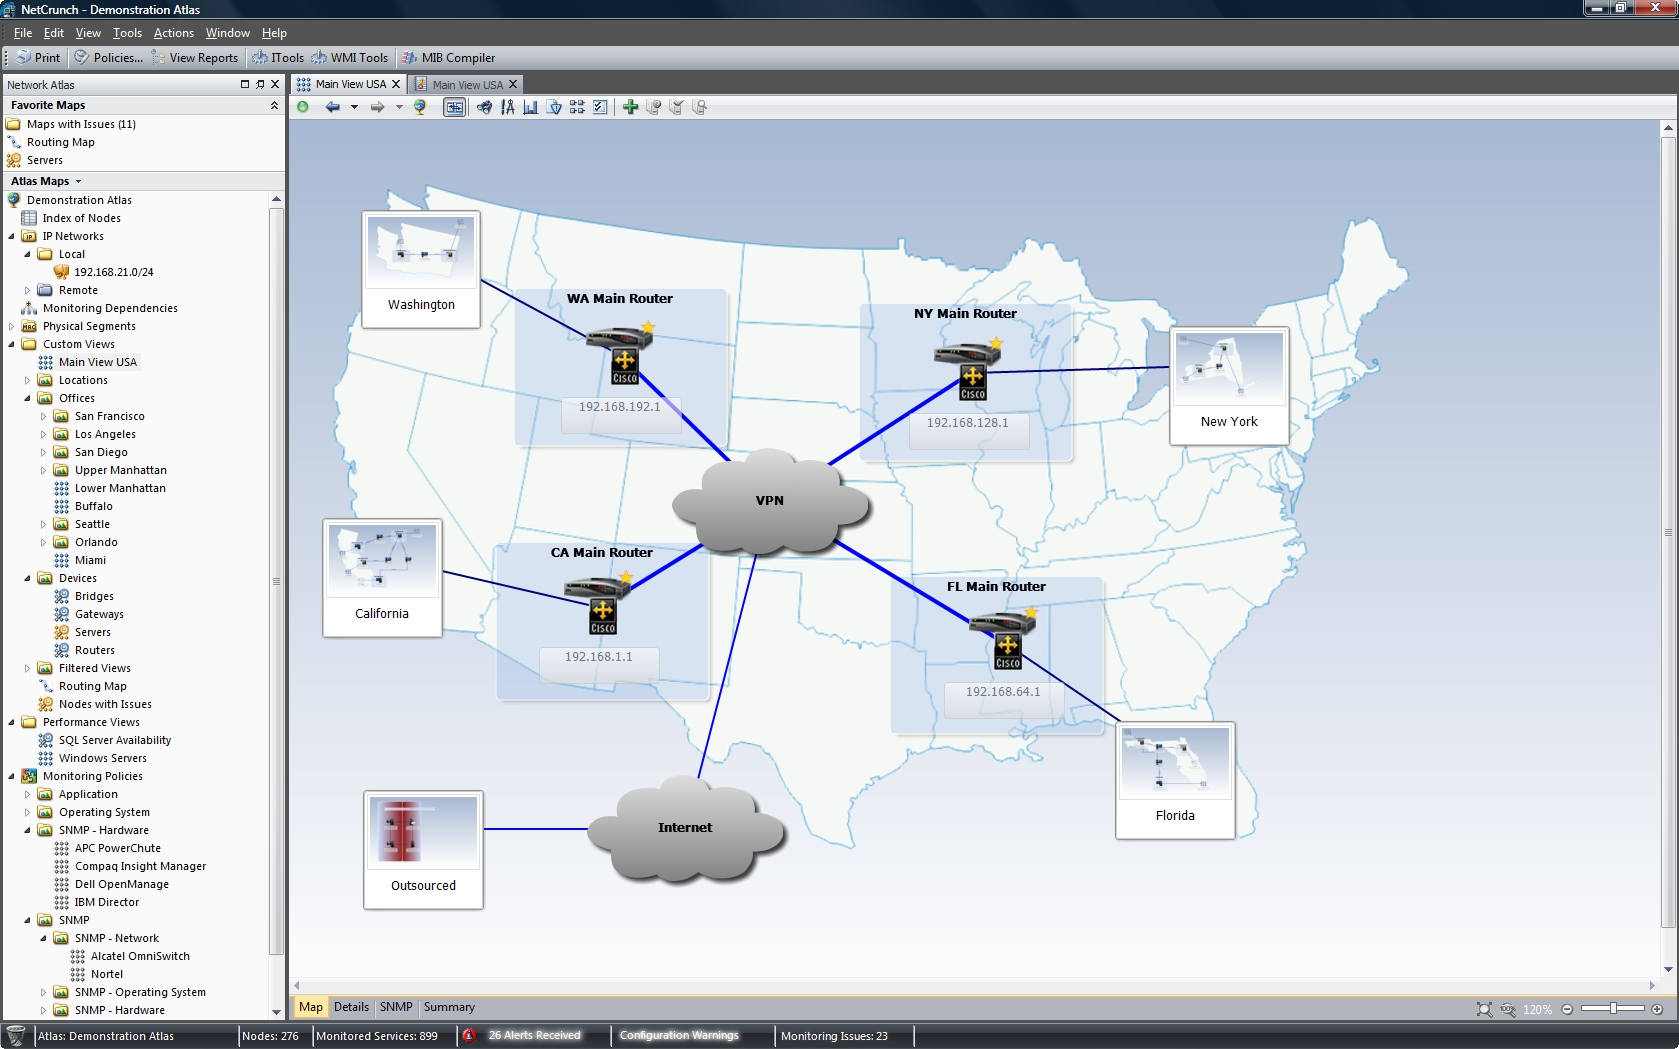 Network mapping monitoring, alerting and reporting software.